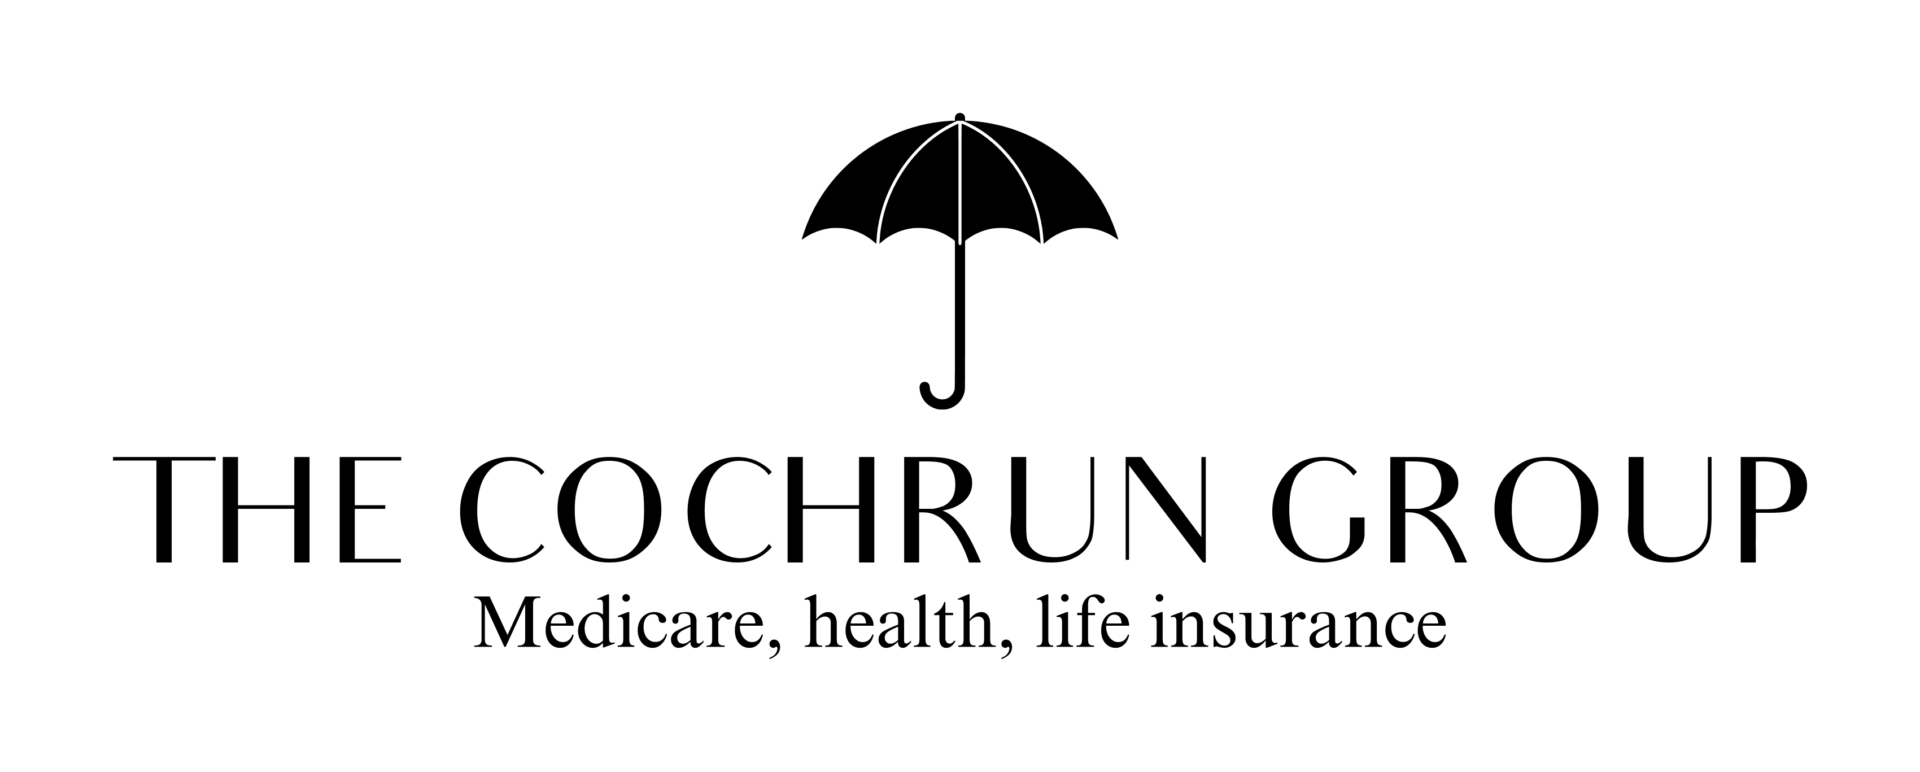 dark_logo_transparent_background